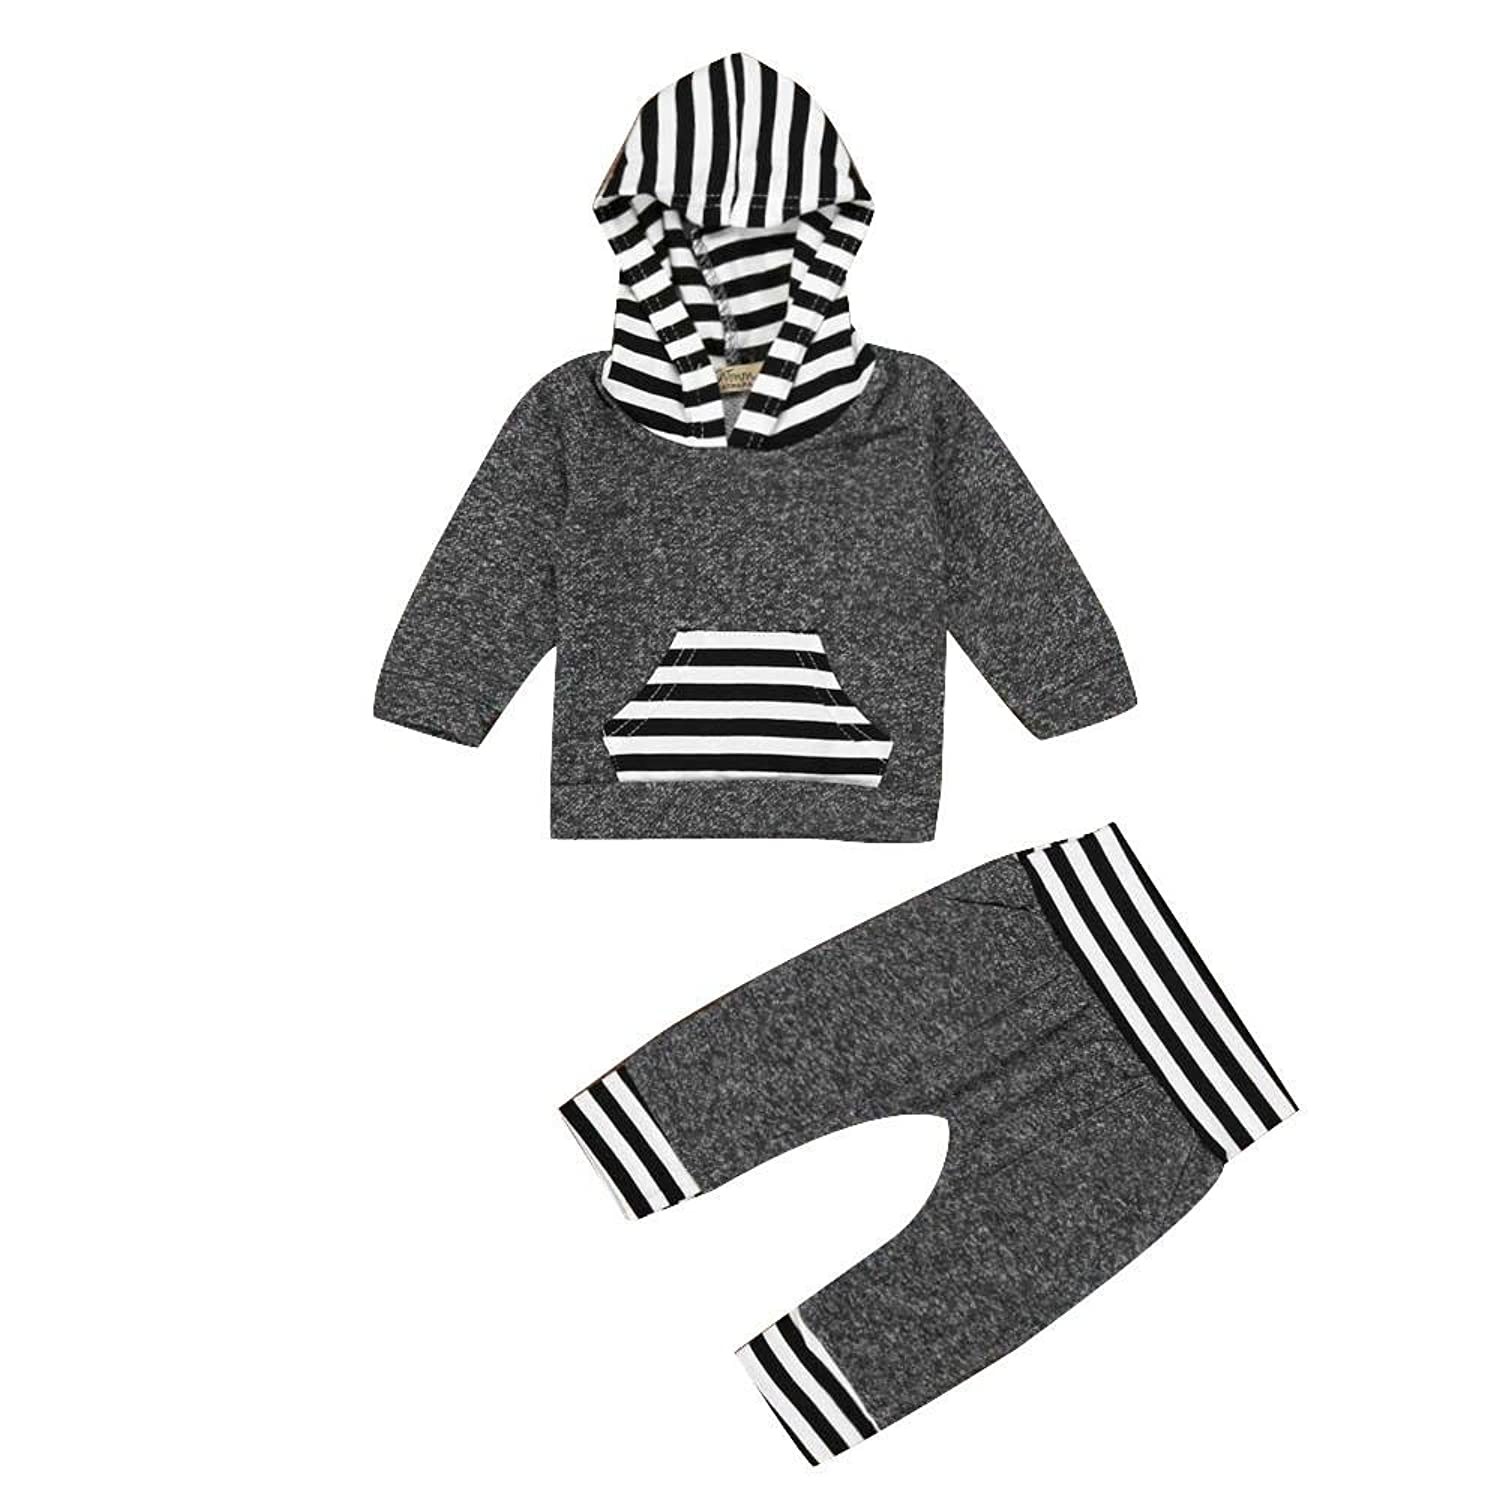 for 636 months babyclode newborn infant baby boy girl clothes set striped